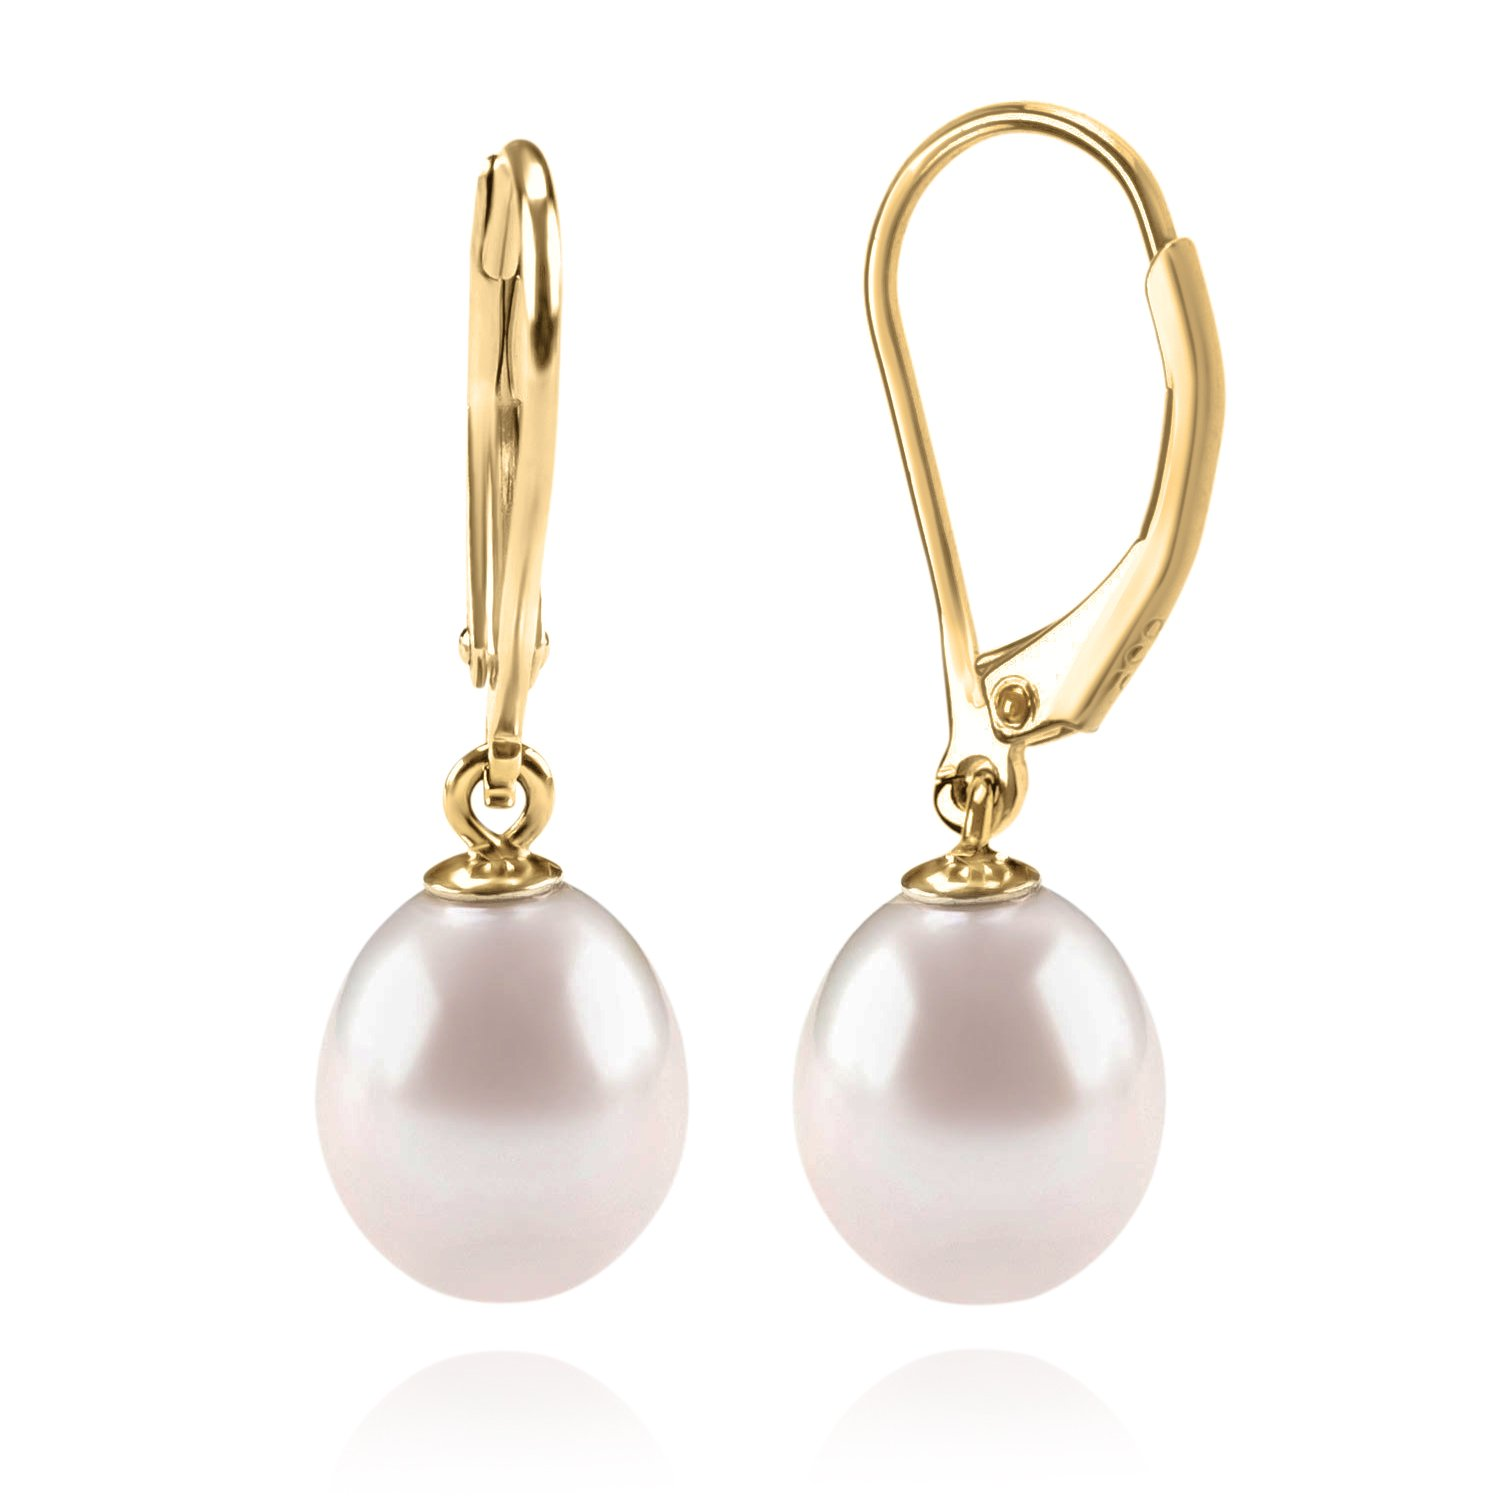 PAVOI 14K Yellow Gold Plated Freshwater Cultured Pearl Earrings Leverback Dangle Studs - Handpicked AAA 7mm